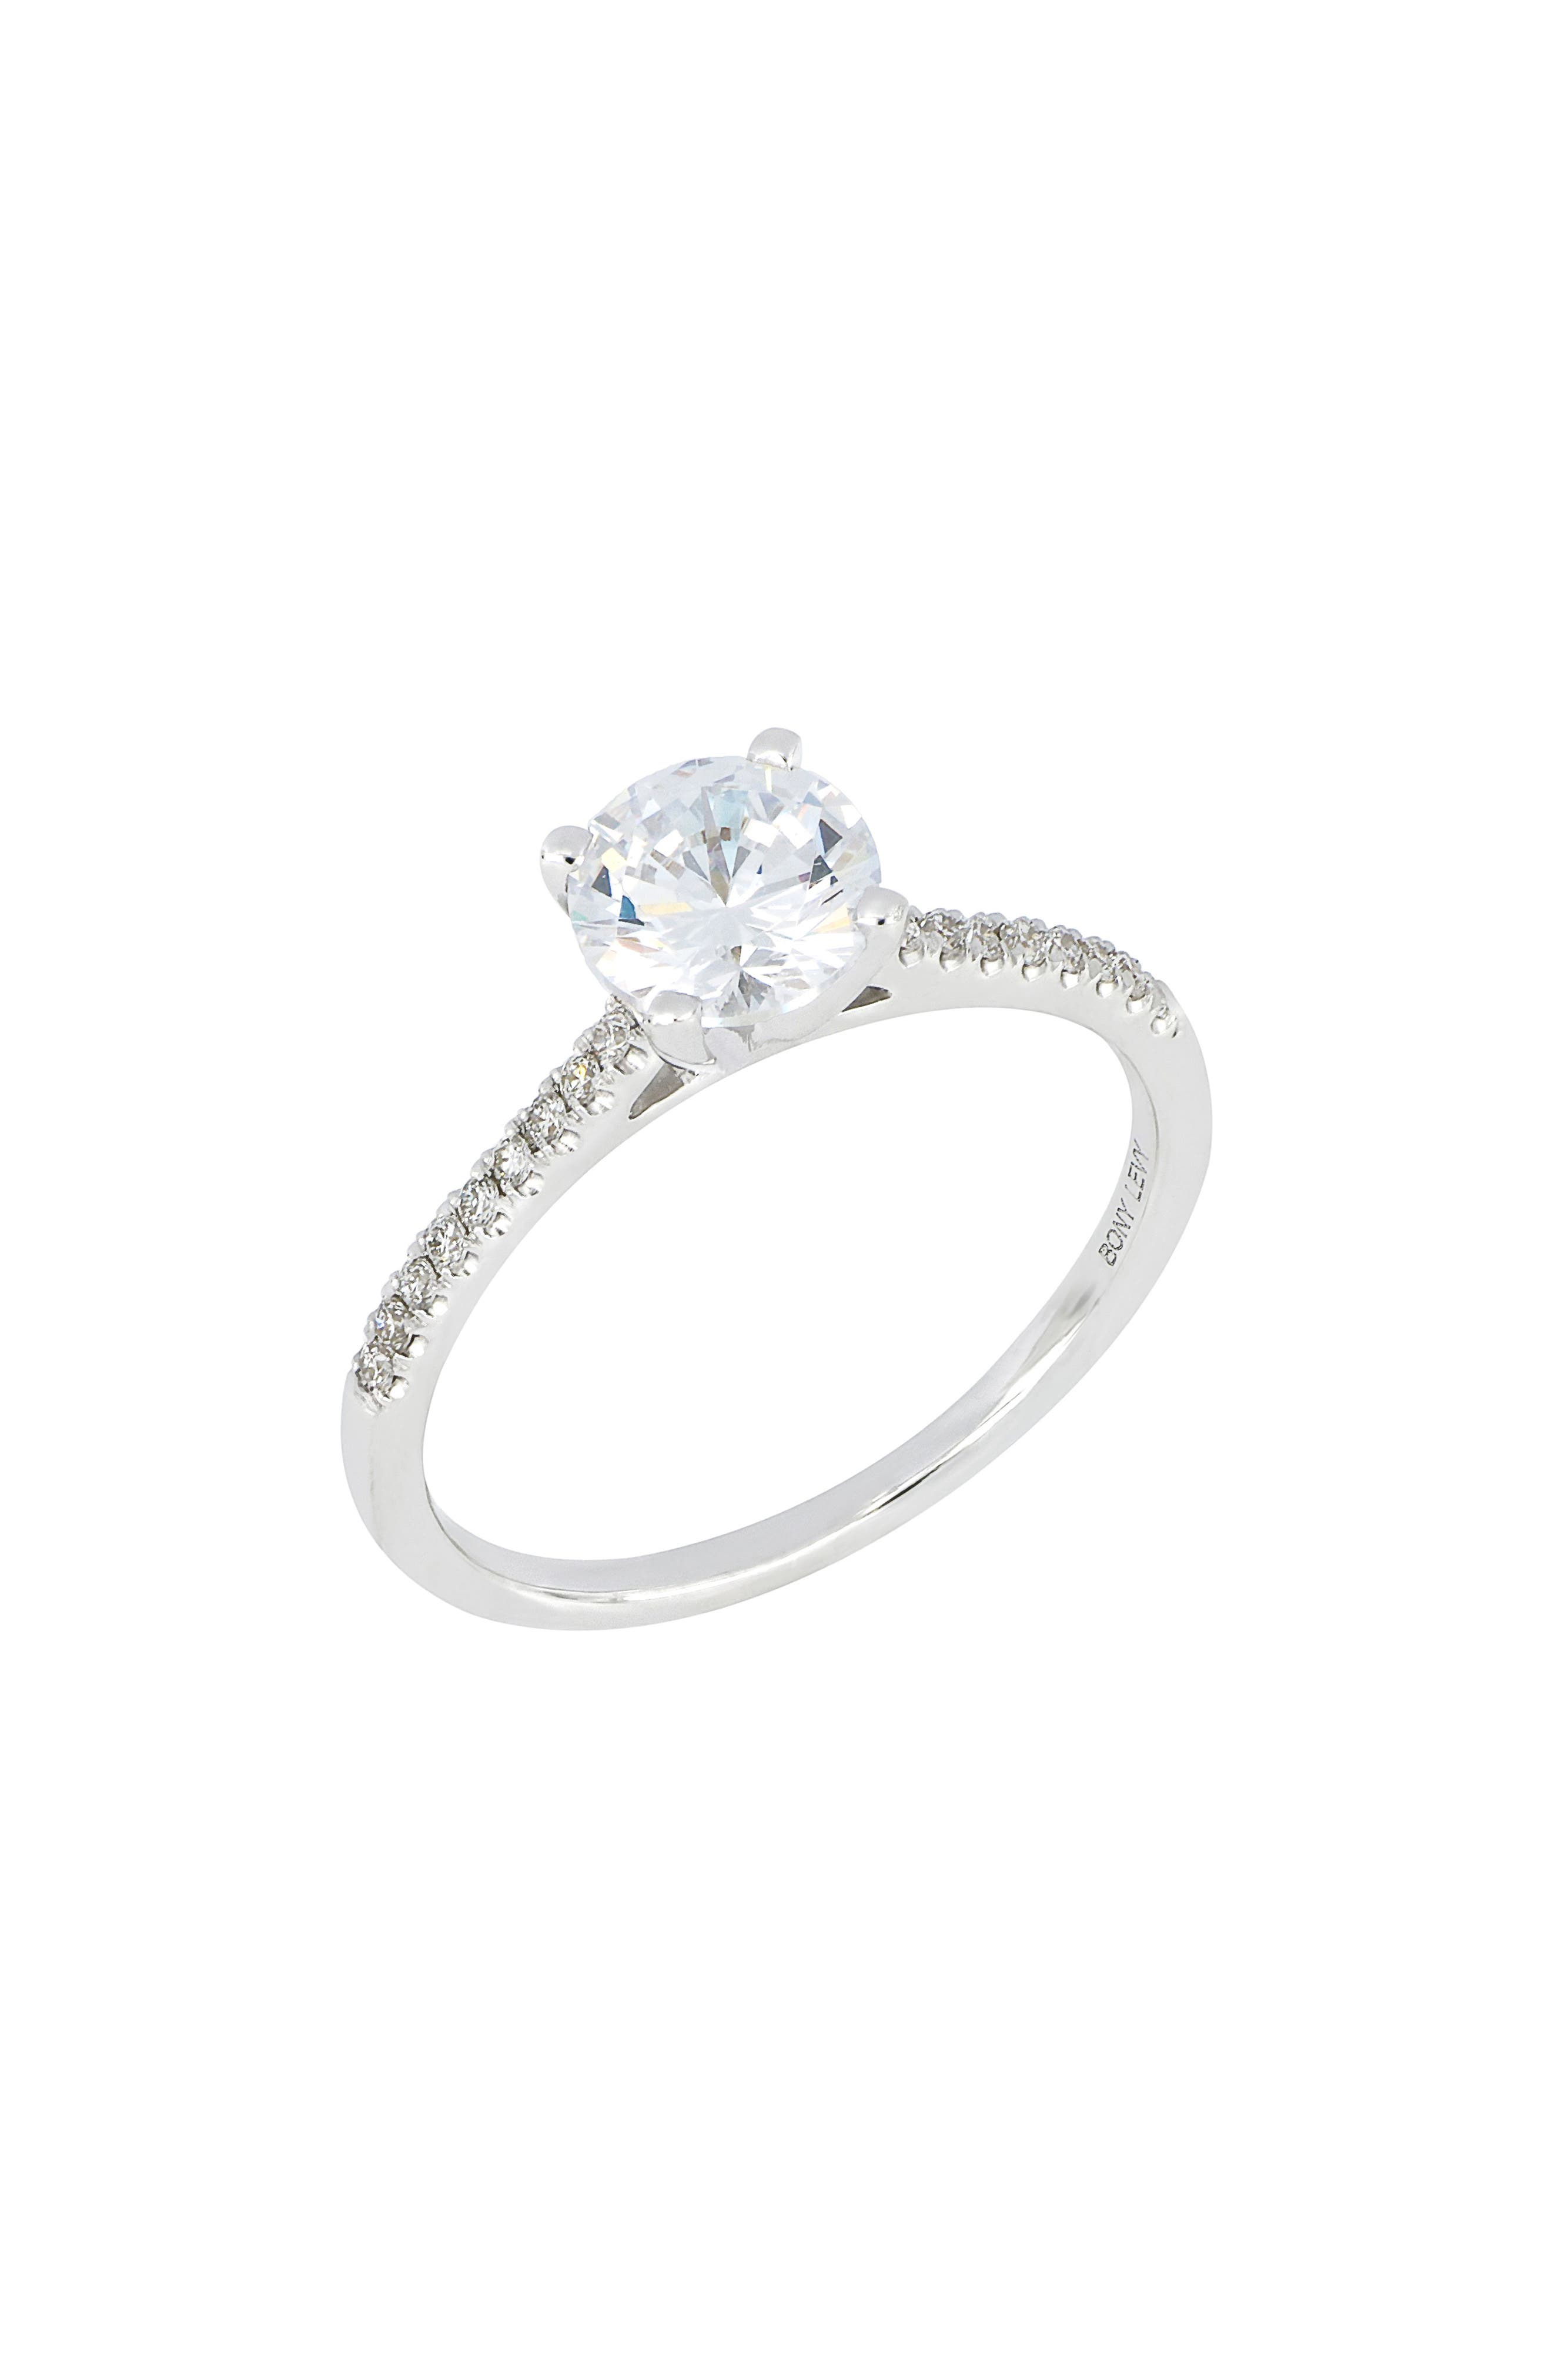 Pavé Diamond Round Engagement Ring Setting,                         Main,                         color, WHITE GOLD